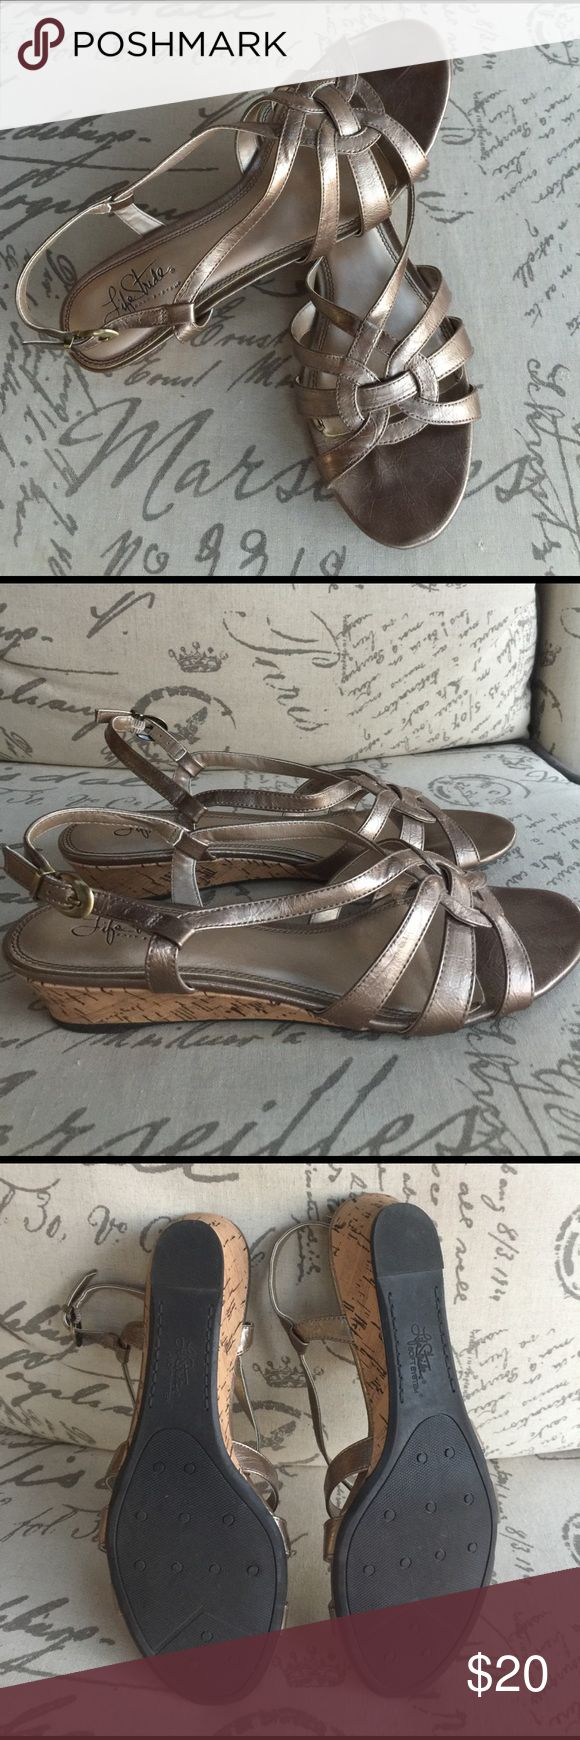 Life Stride Soft System Pewter Sandals Ready for summer! These almost new comfy sandals will be your grab and go pair every day. We all need more shoes that literally go with everything. These are a 9.5 sandal. I loved them so much so I bought them. But I'm a true 10. Just am not grabbing for them as much as I hoped do to the smaller size. Now you can enjoy my mistake and have a great go to pair of sandals this summer. No flaws. Can't even tell these been worn a few times. Life Stride Shoes…